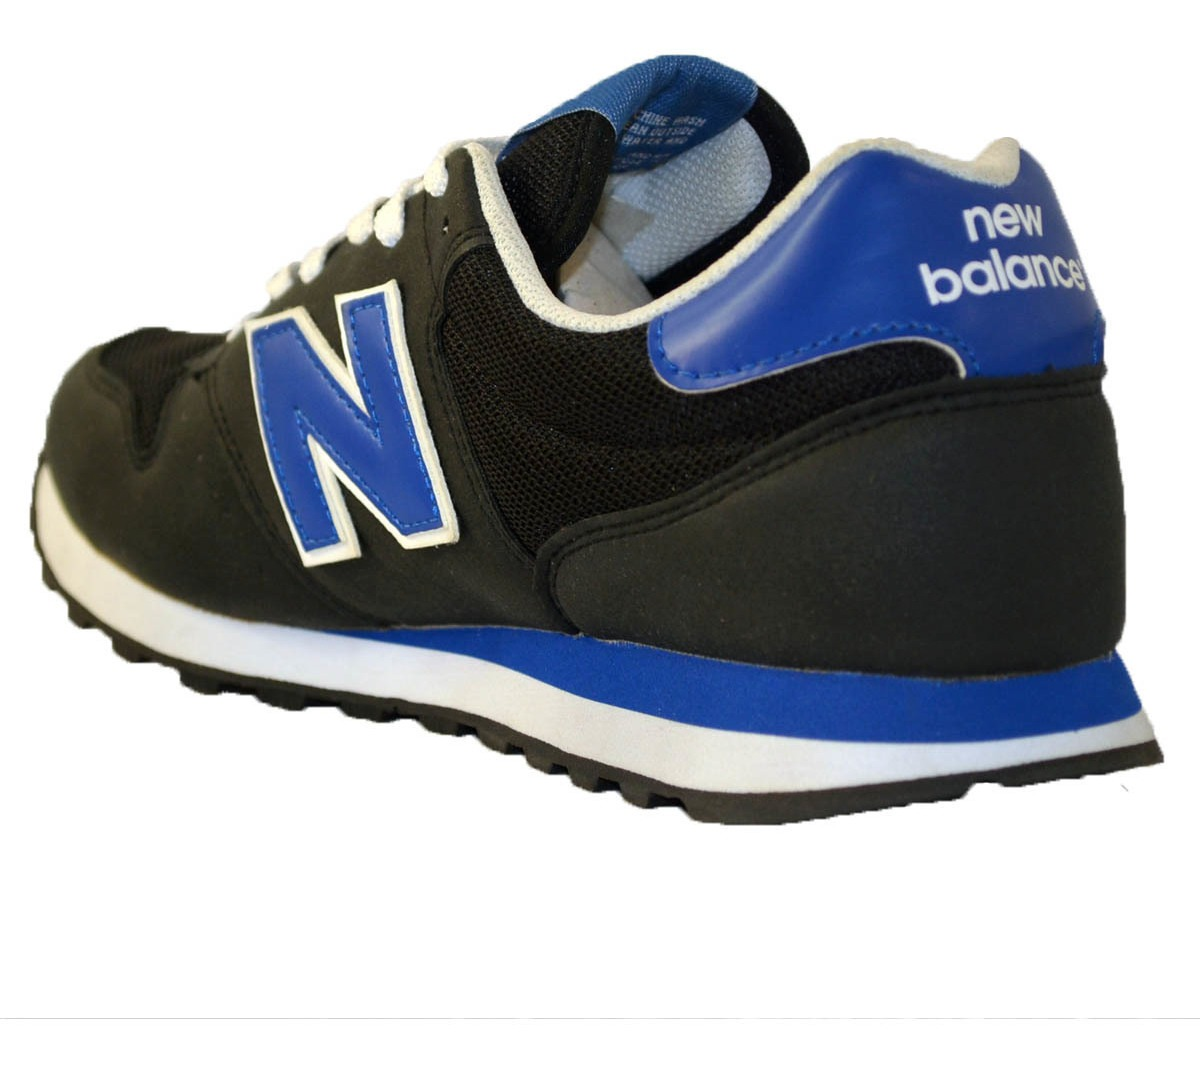 new balance 500 gm hombres